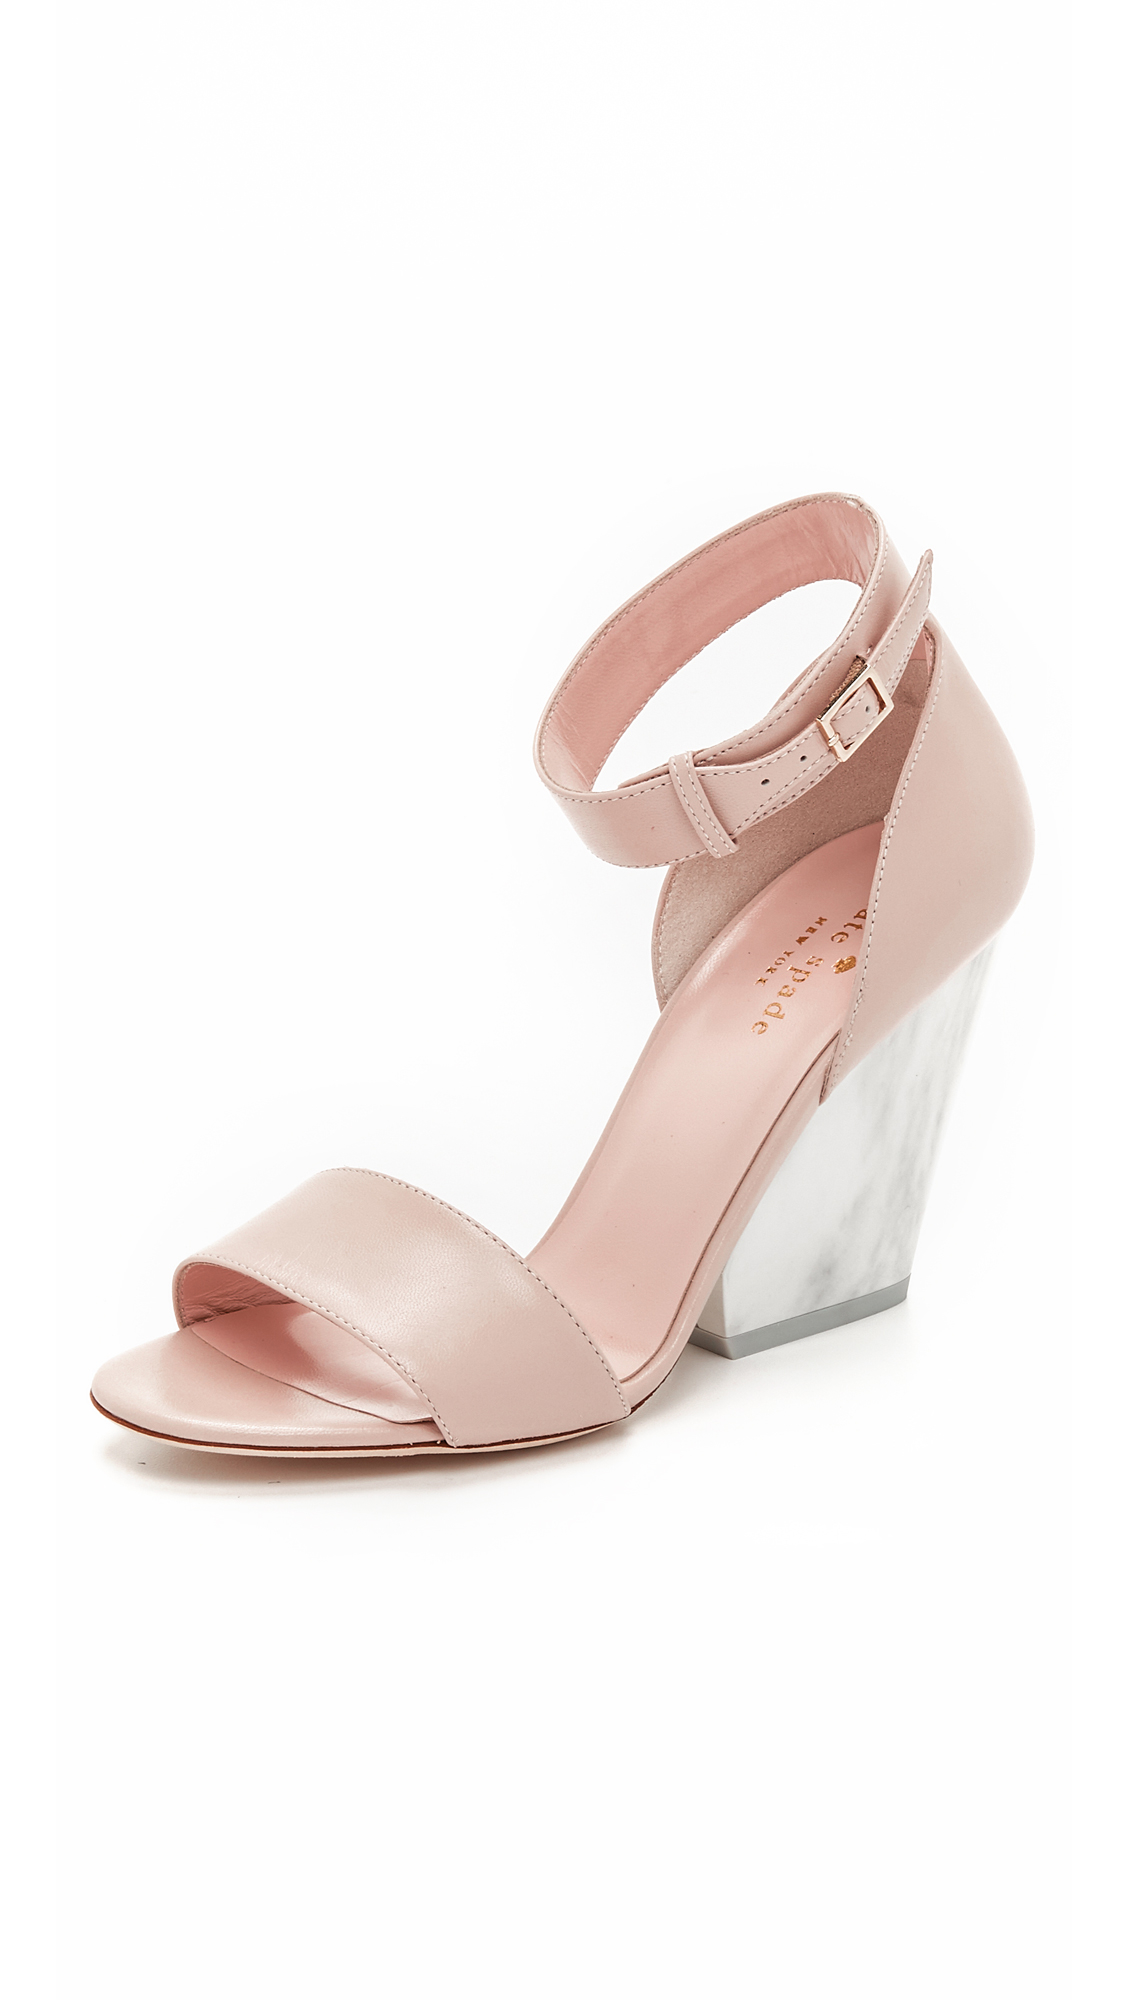 789e7878322 Lyst - Kate Spade Indiana Wedge Sandals in Pink